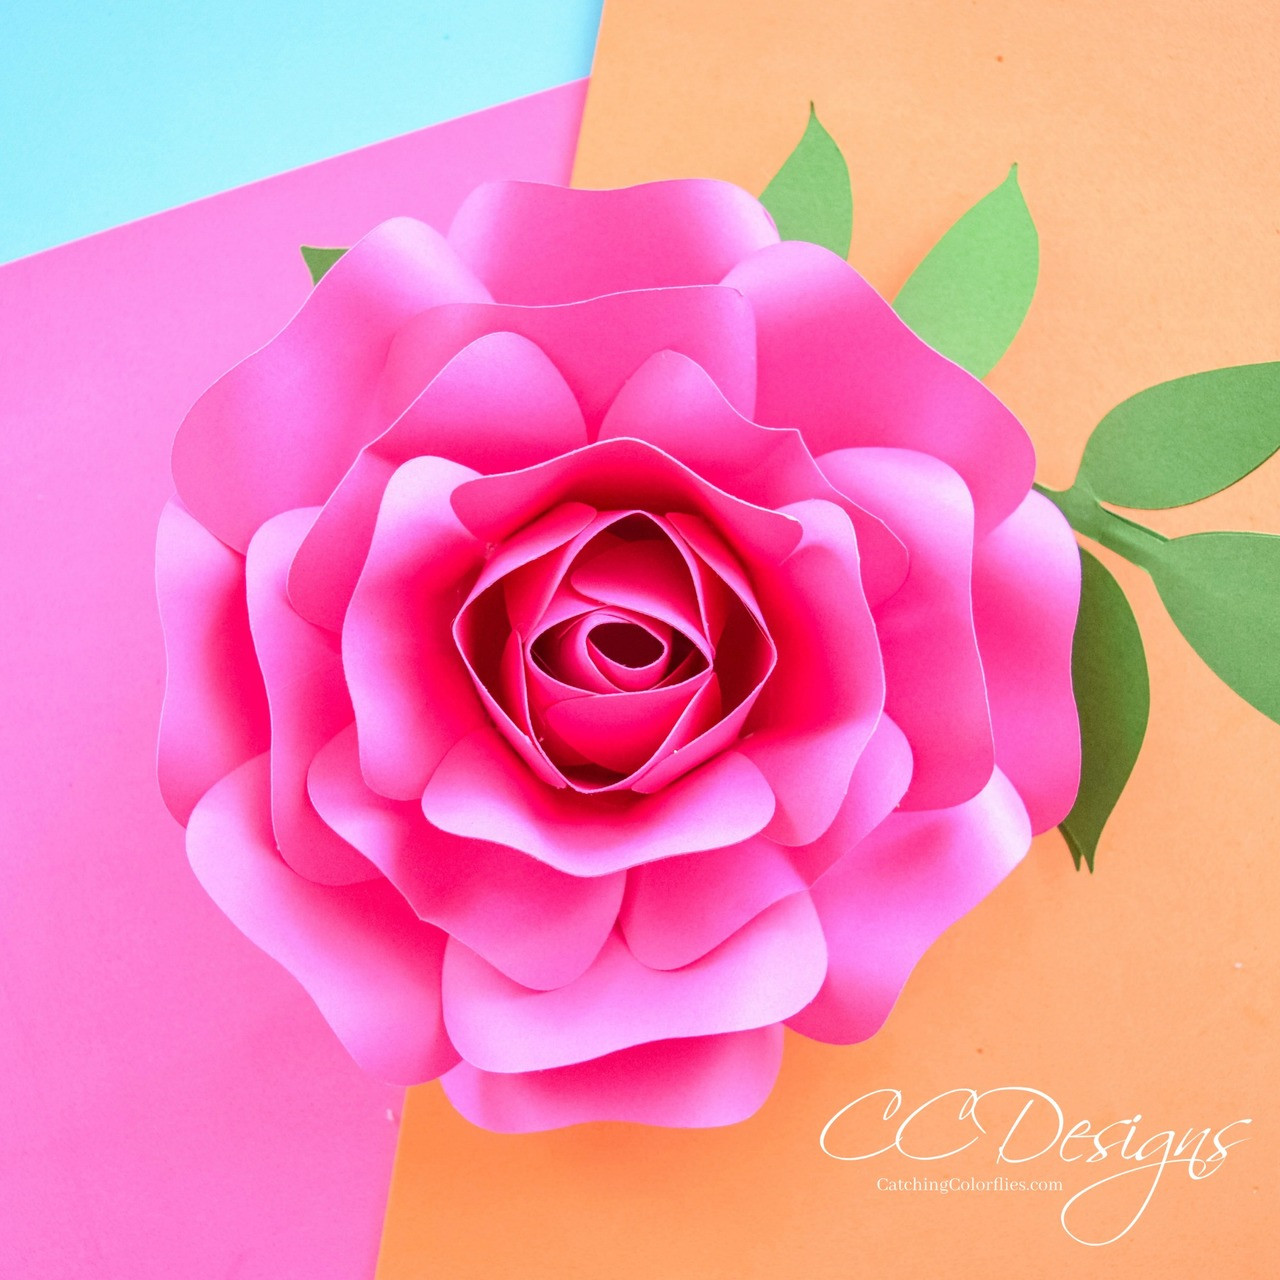 Large and small paper rose templates set of 3 catching colorflies digital download mightylinksfo